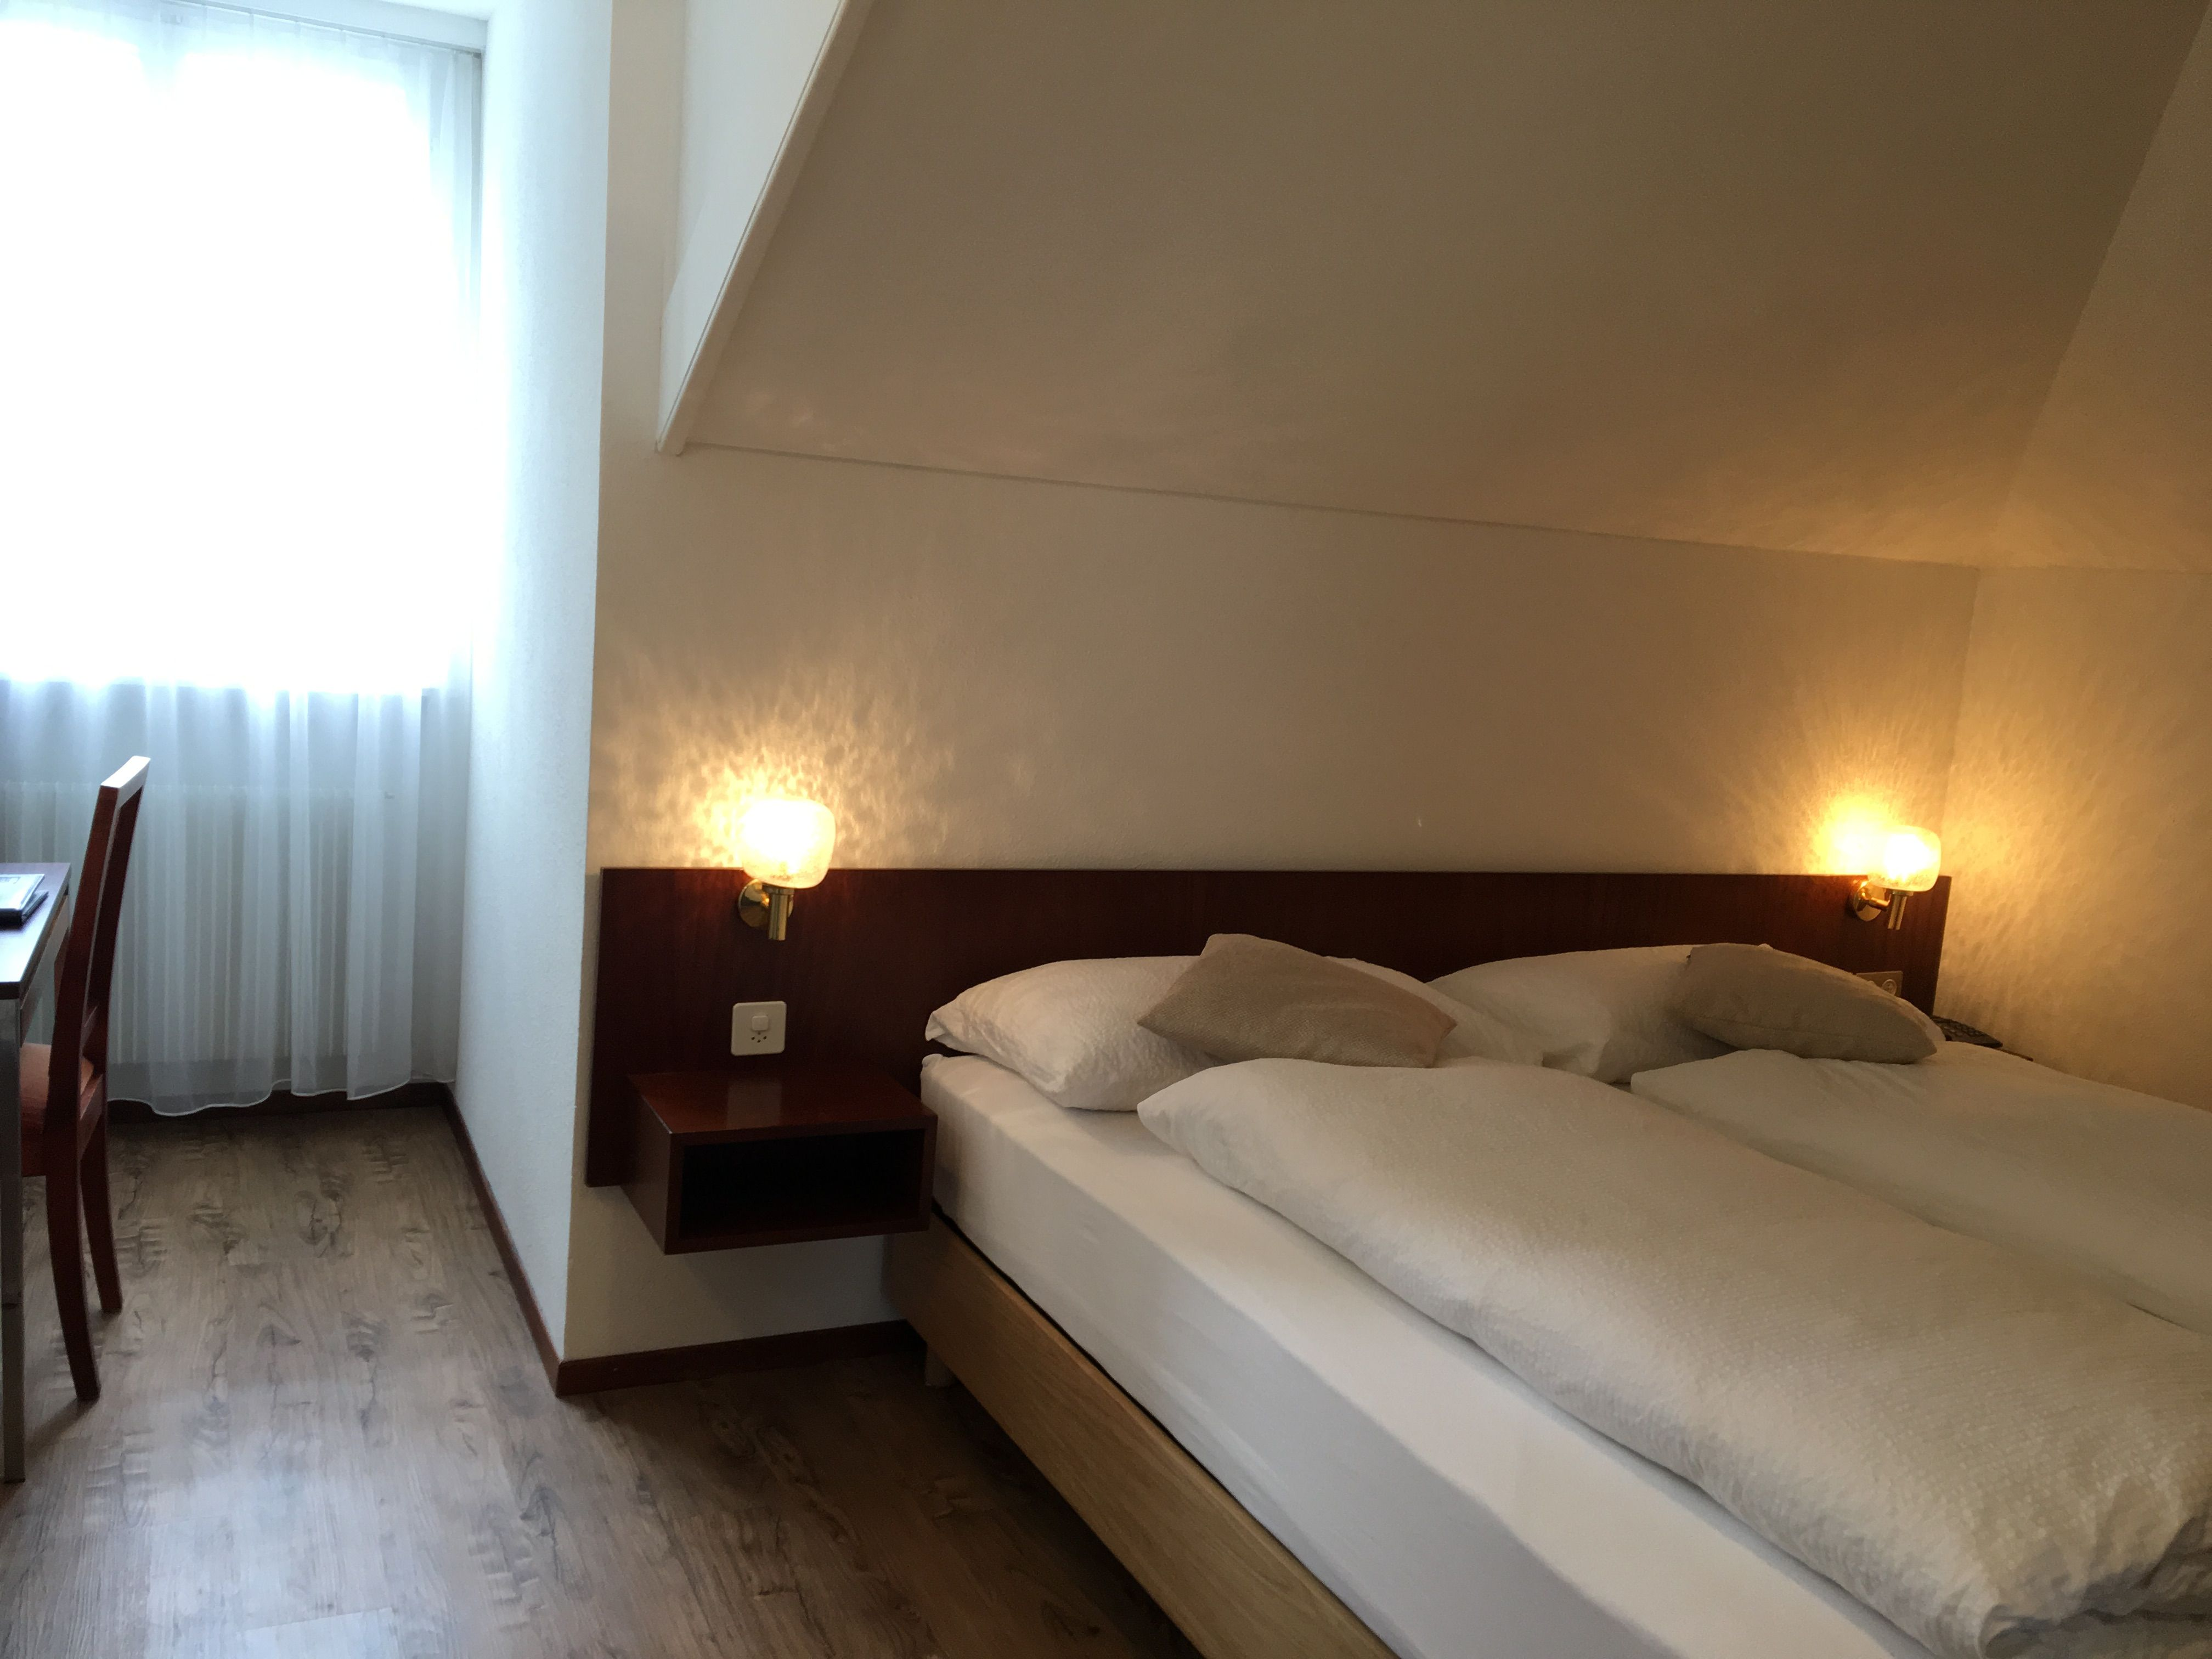 Hotel de Chailly - Rooms